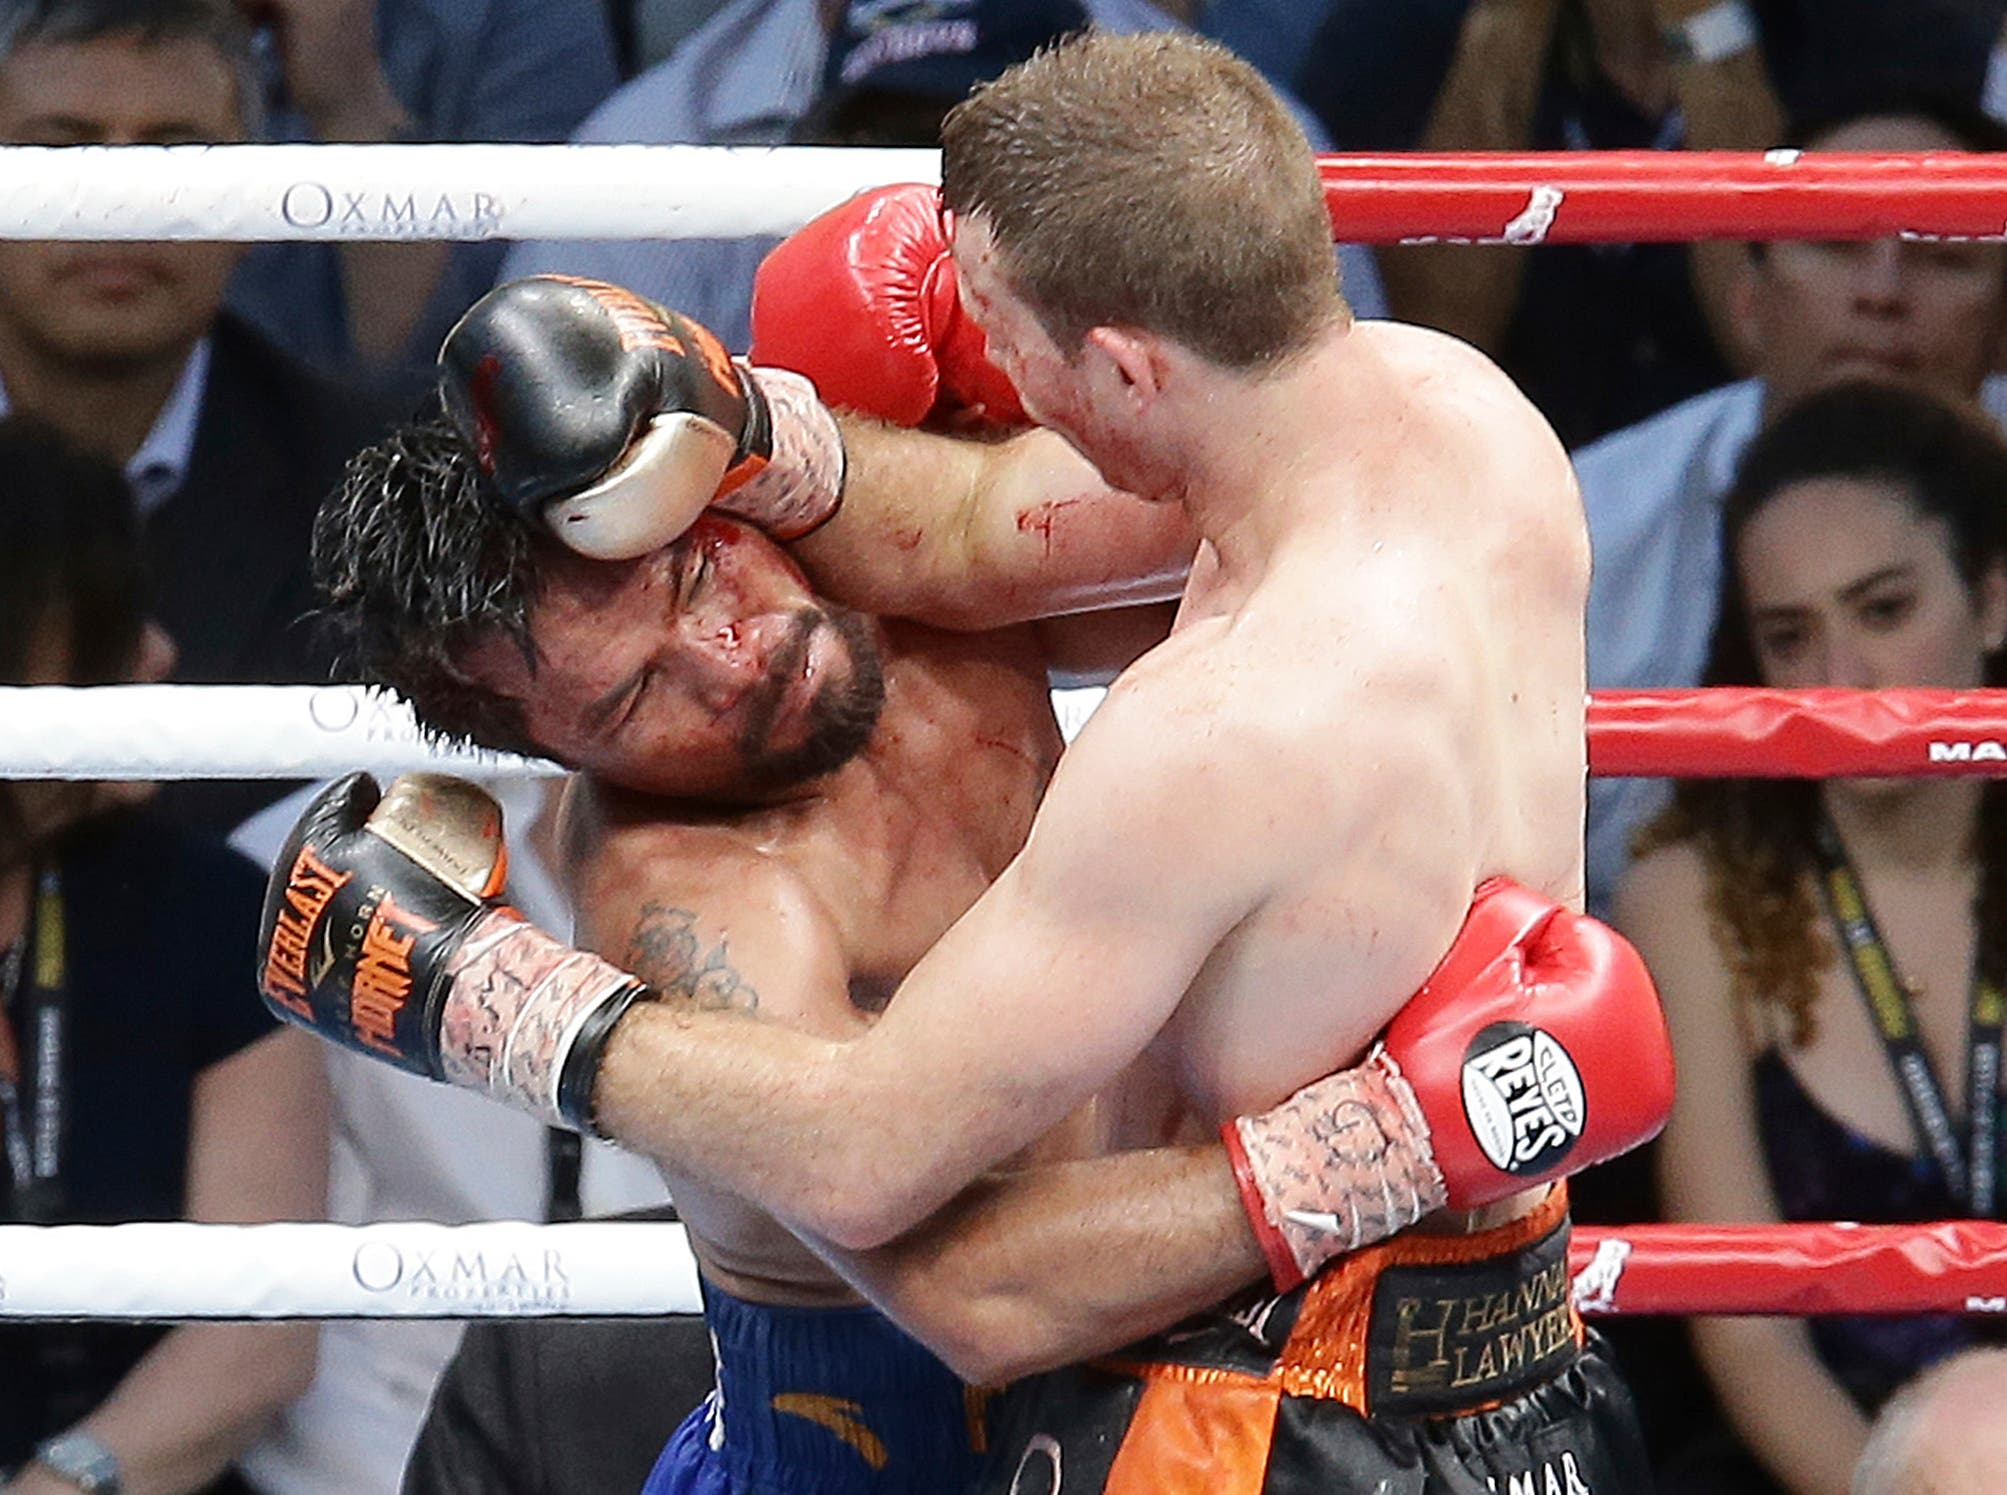 Manny Pacquiao of the Philippines, left, clinches with Jeff Horn of Australia, during their WBO World Welterweight title fight in Brisbane, Australia, Sunday, July 2, 2017. (AP)